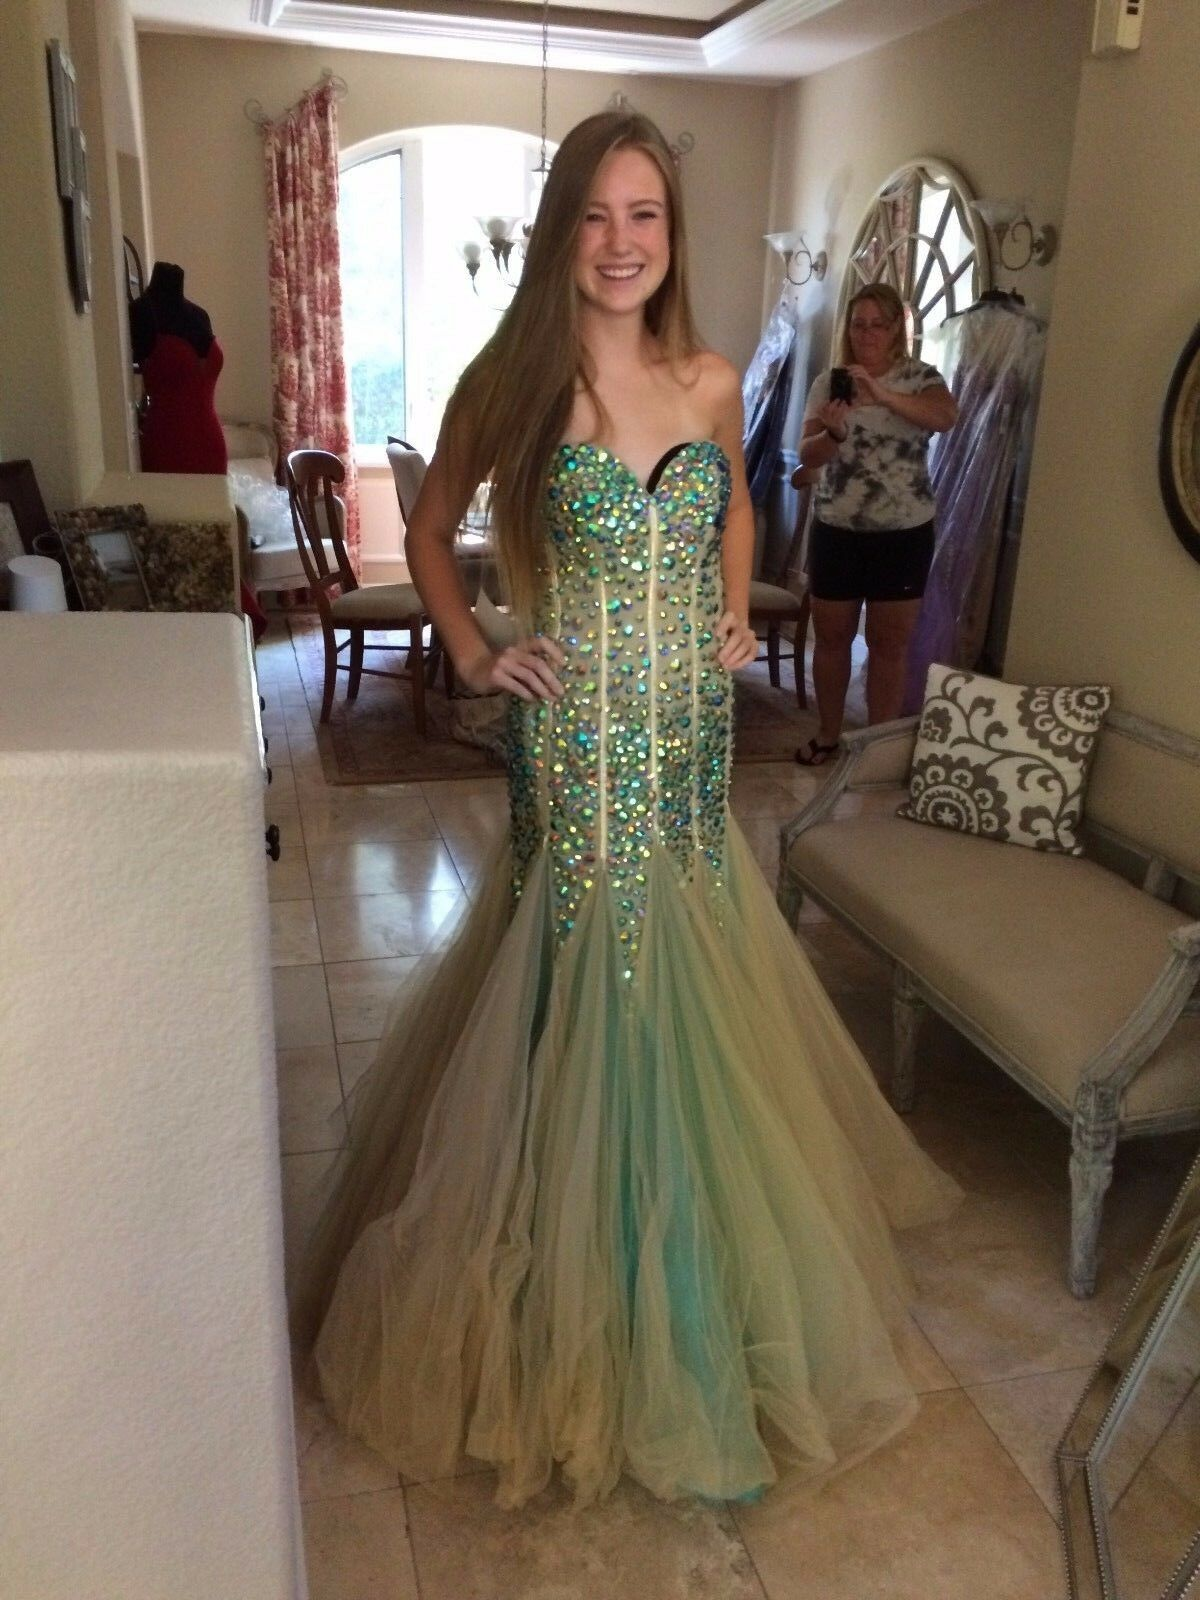 900 NWT SHERRI HILL PROM PAGEANT FORMAL DRESS GOWN SIZE 6